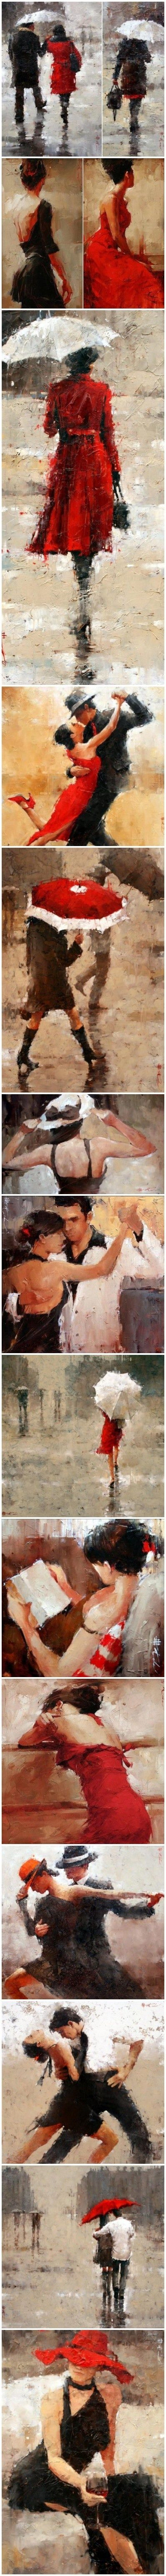 Life and Love.  A great set of pieces by an unknown artist!